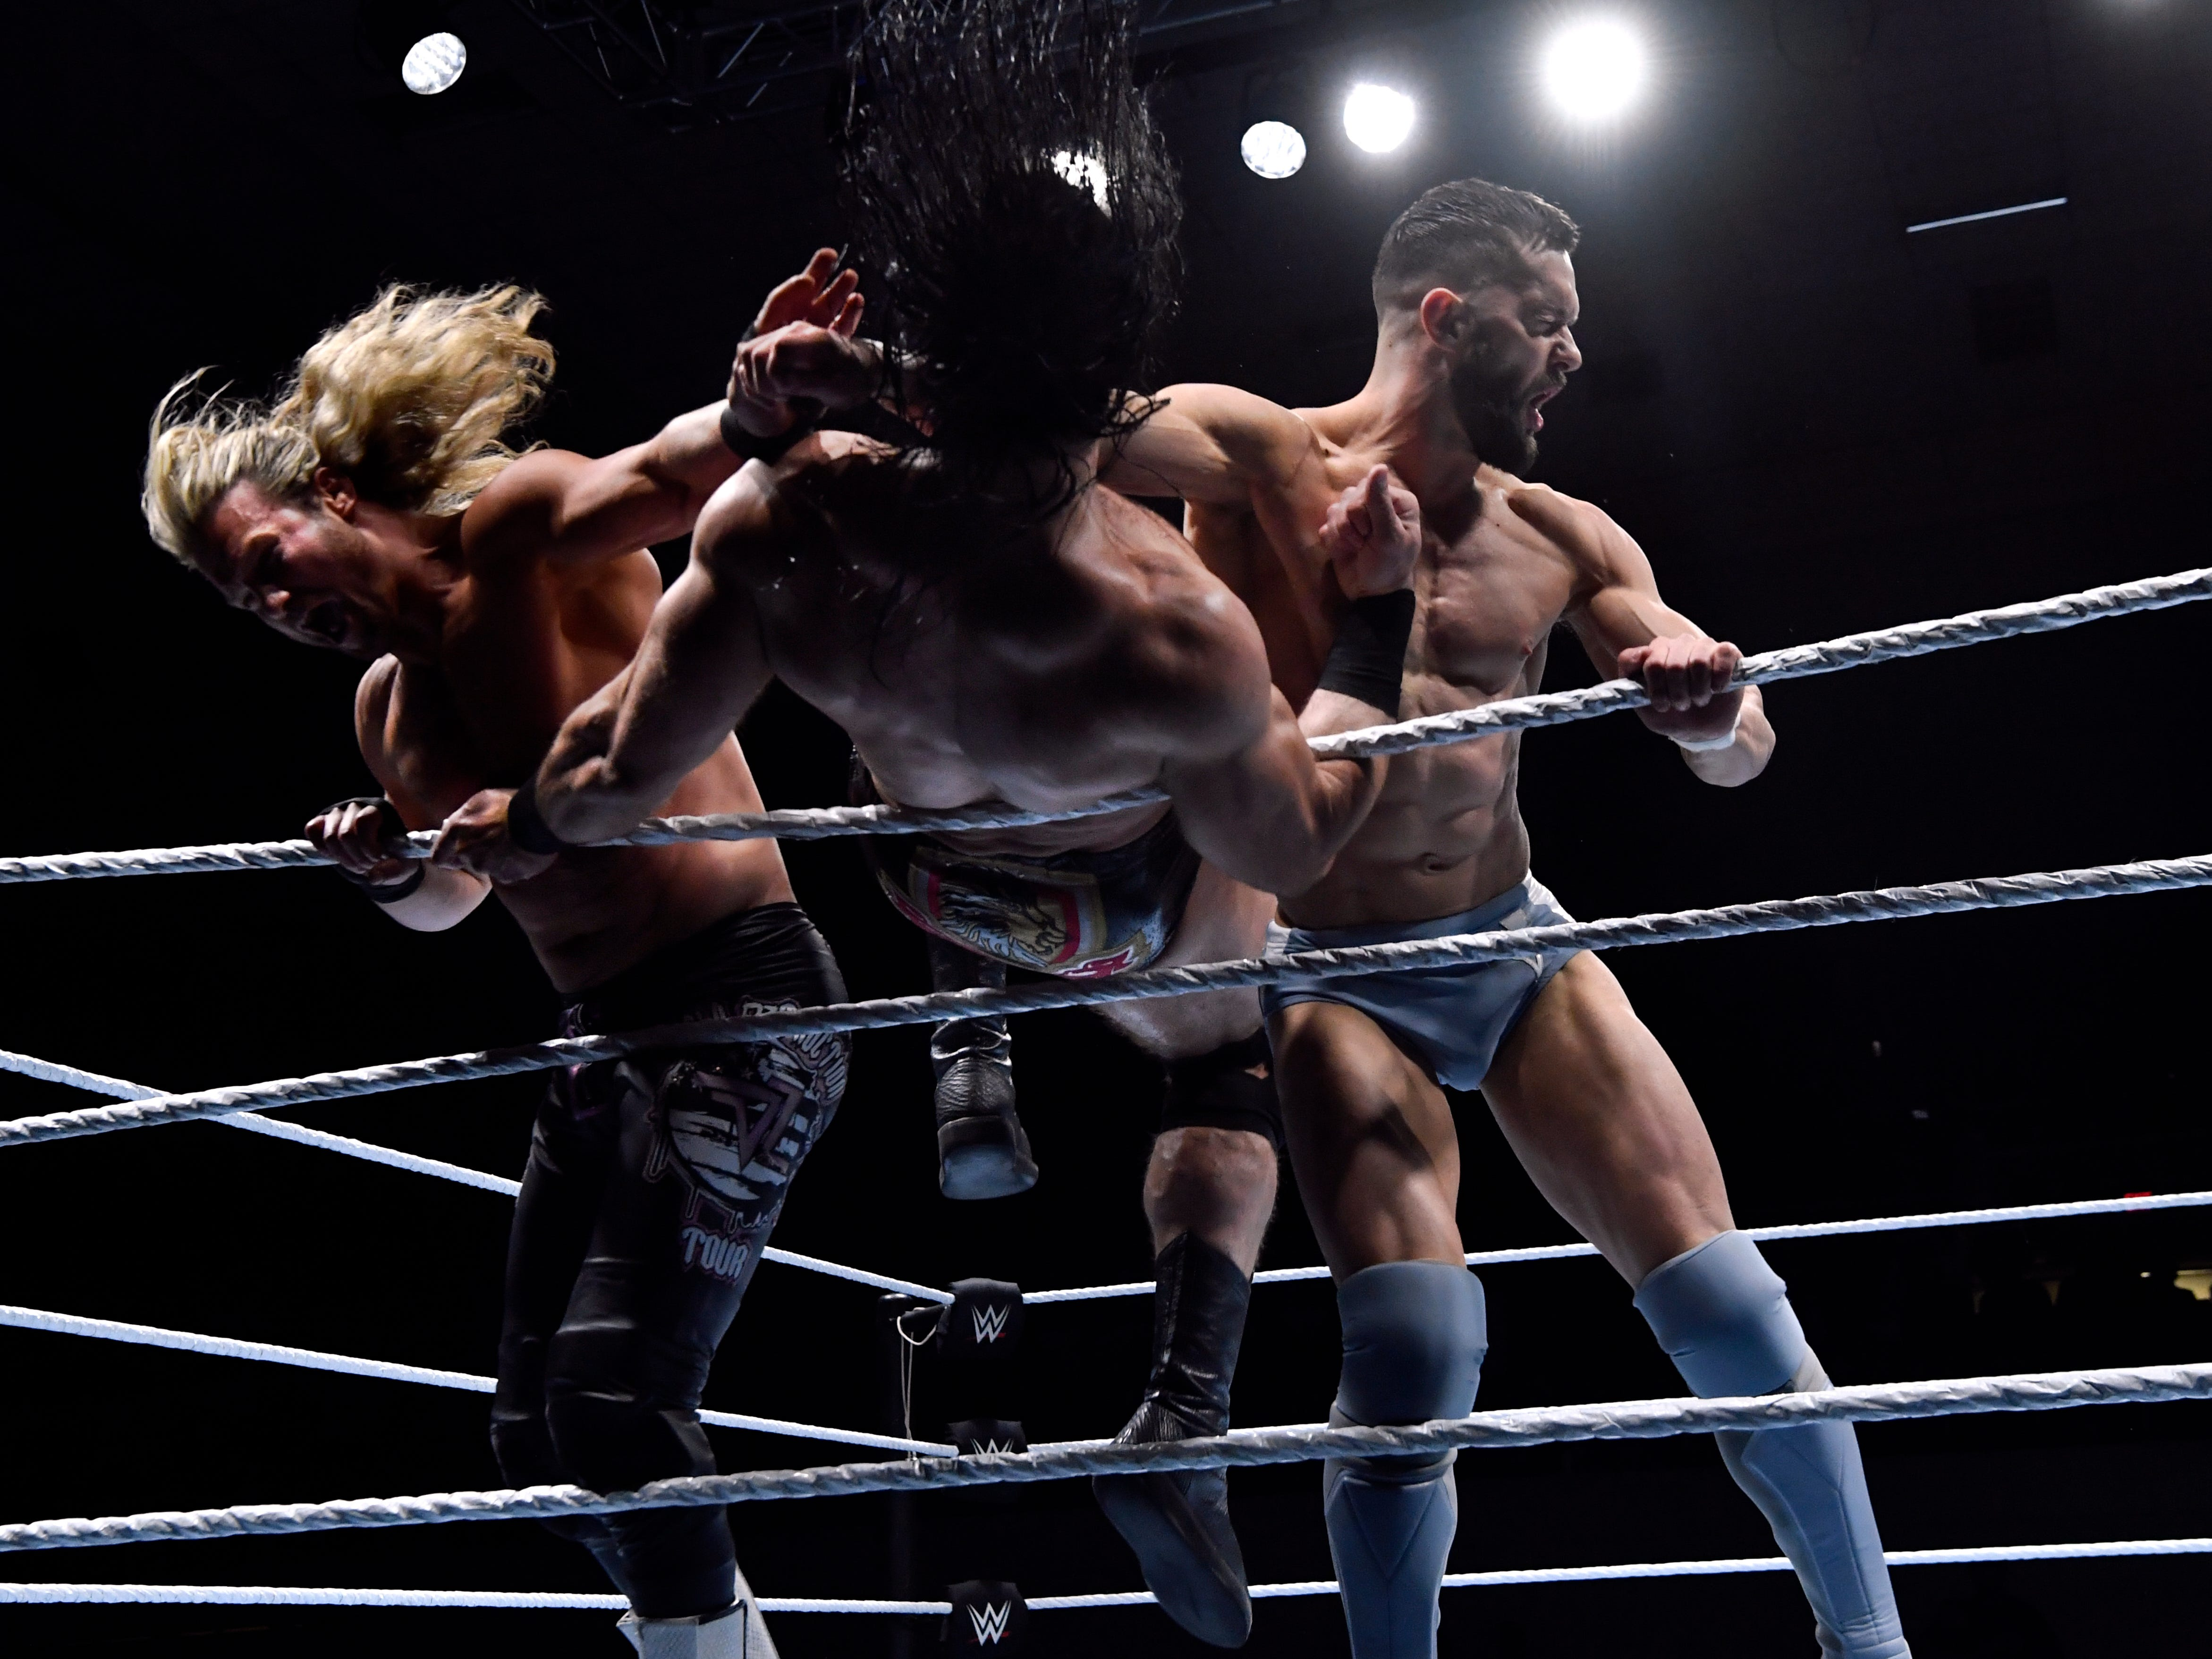 Dolph Ziggler (left) and Finn Bálor knock Drew McIntyre out of the ring during Saturday's WWE Live wrestling event Jan. 19, 2019. Held at the Taylor County Coliseum, the evening featured a colorful array of World Wrestling Entertainment stars, including Mixed Martial Arts fighter Ronda Rousey.